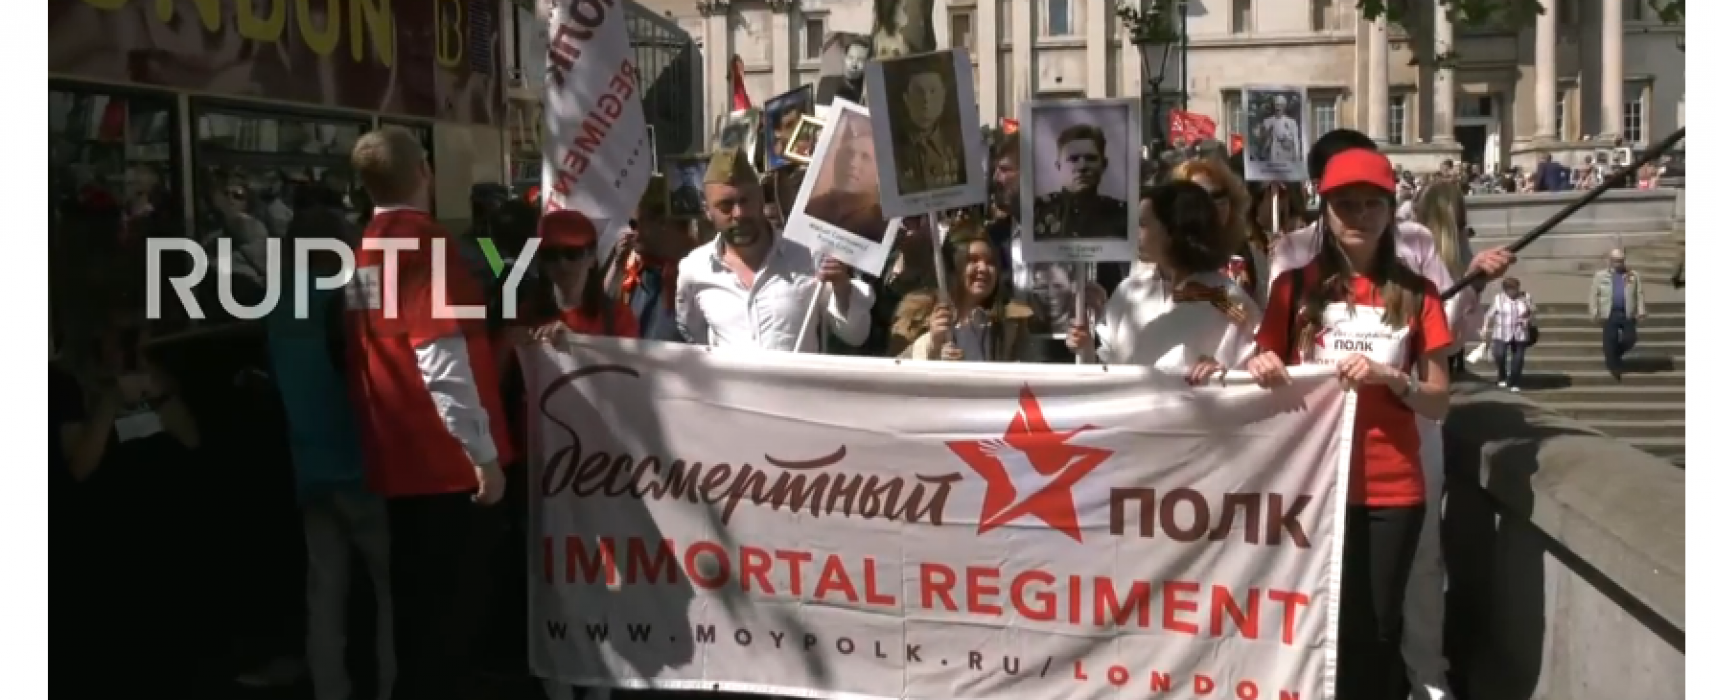 Immortal Regiment marches are a festival of the grotesque